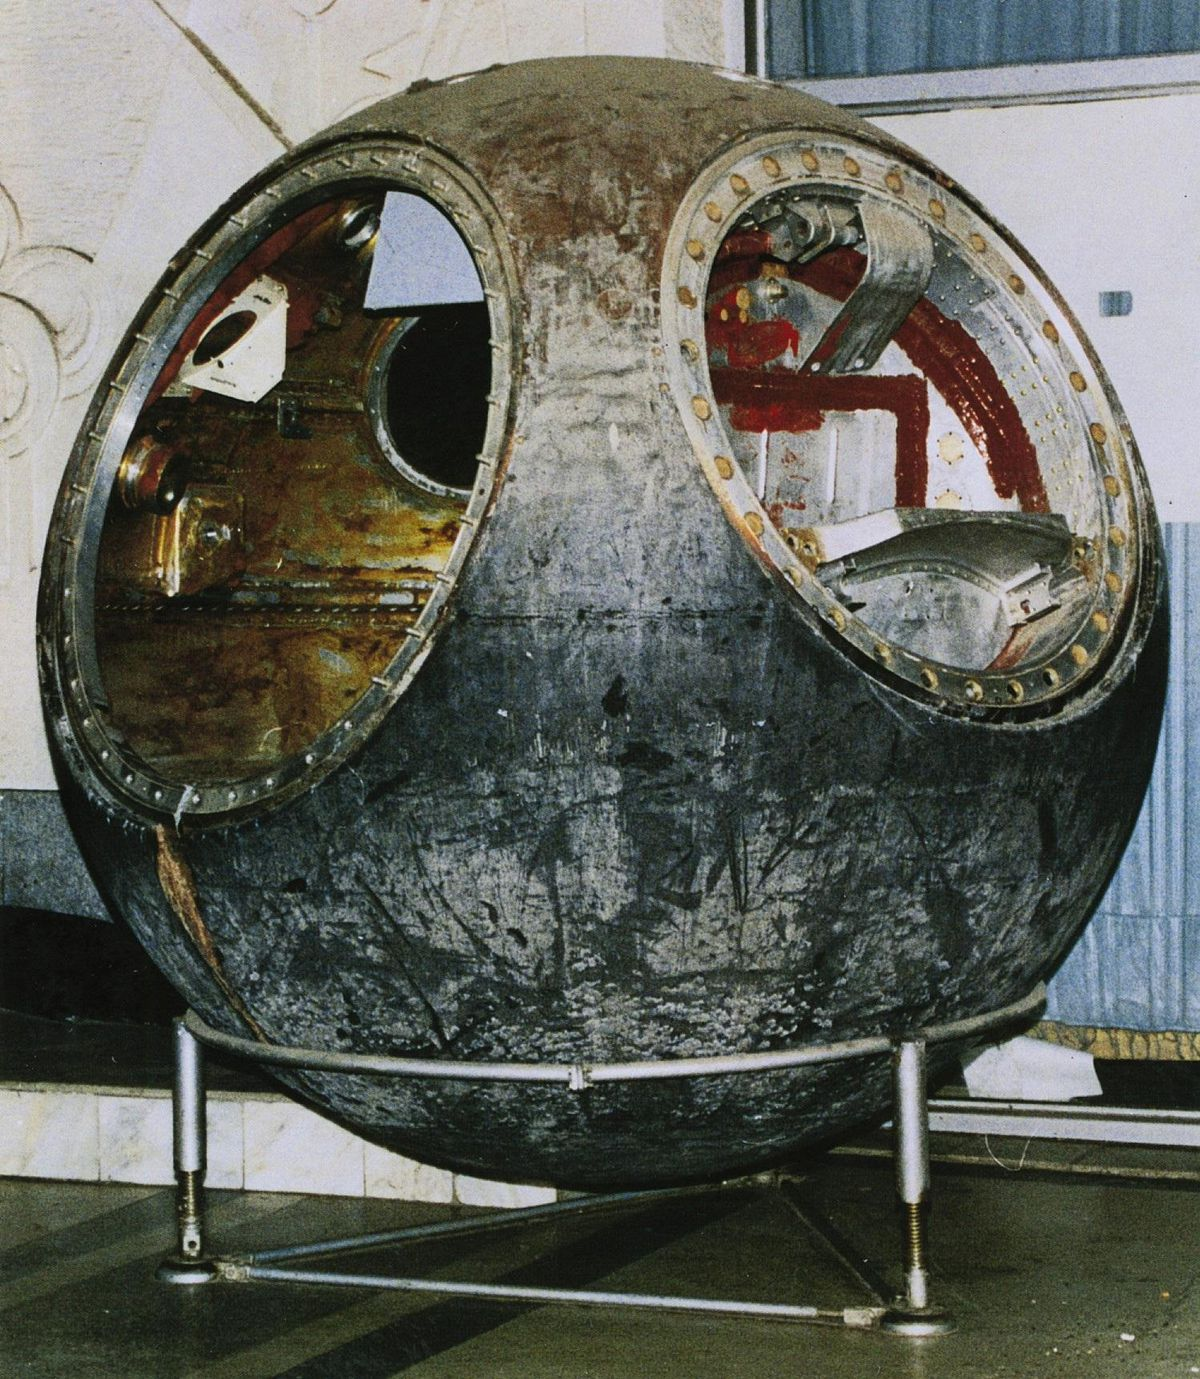 The Vostok 3KA-2 space capsule, flown with the cosmonaut-mannequin Ivan Ivanovich on March 25, 1961, in the final test mission before Yuri Gagarin's first manned space flight